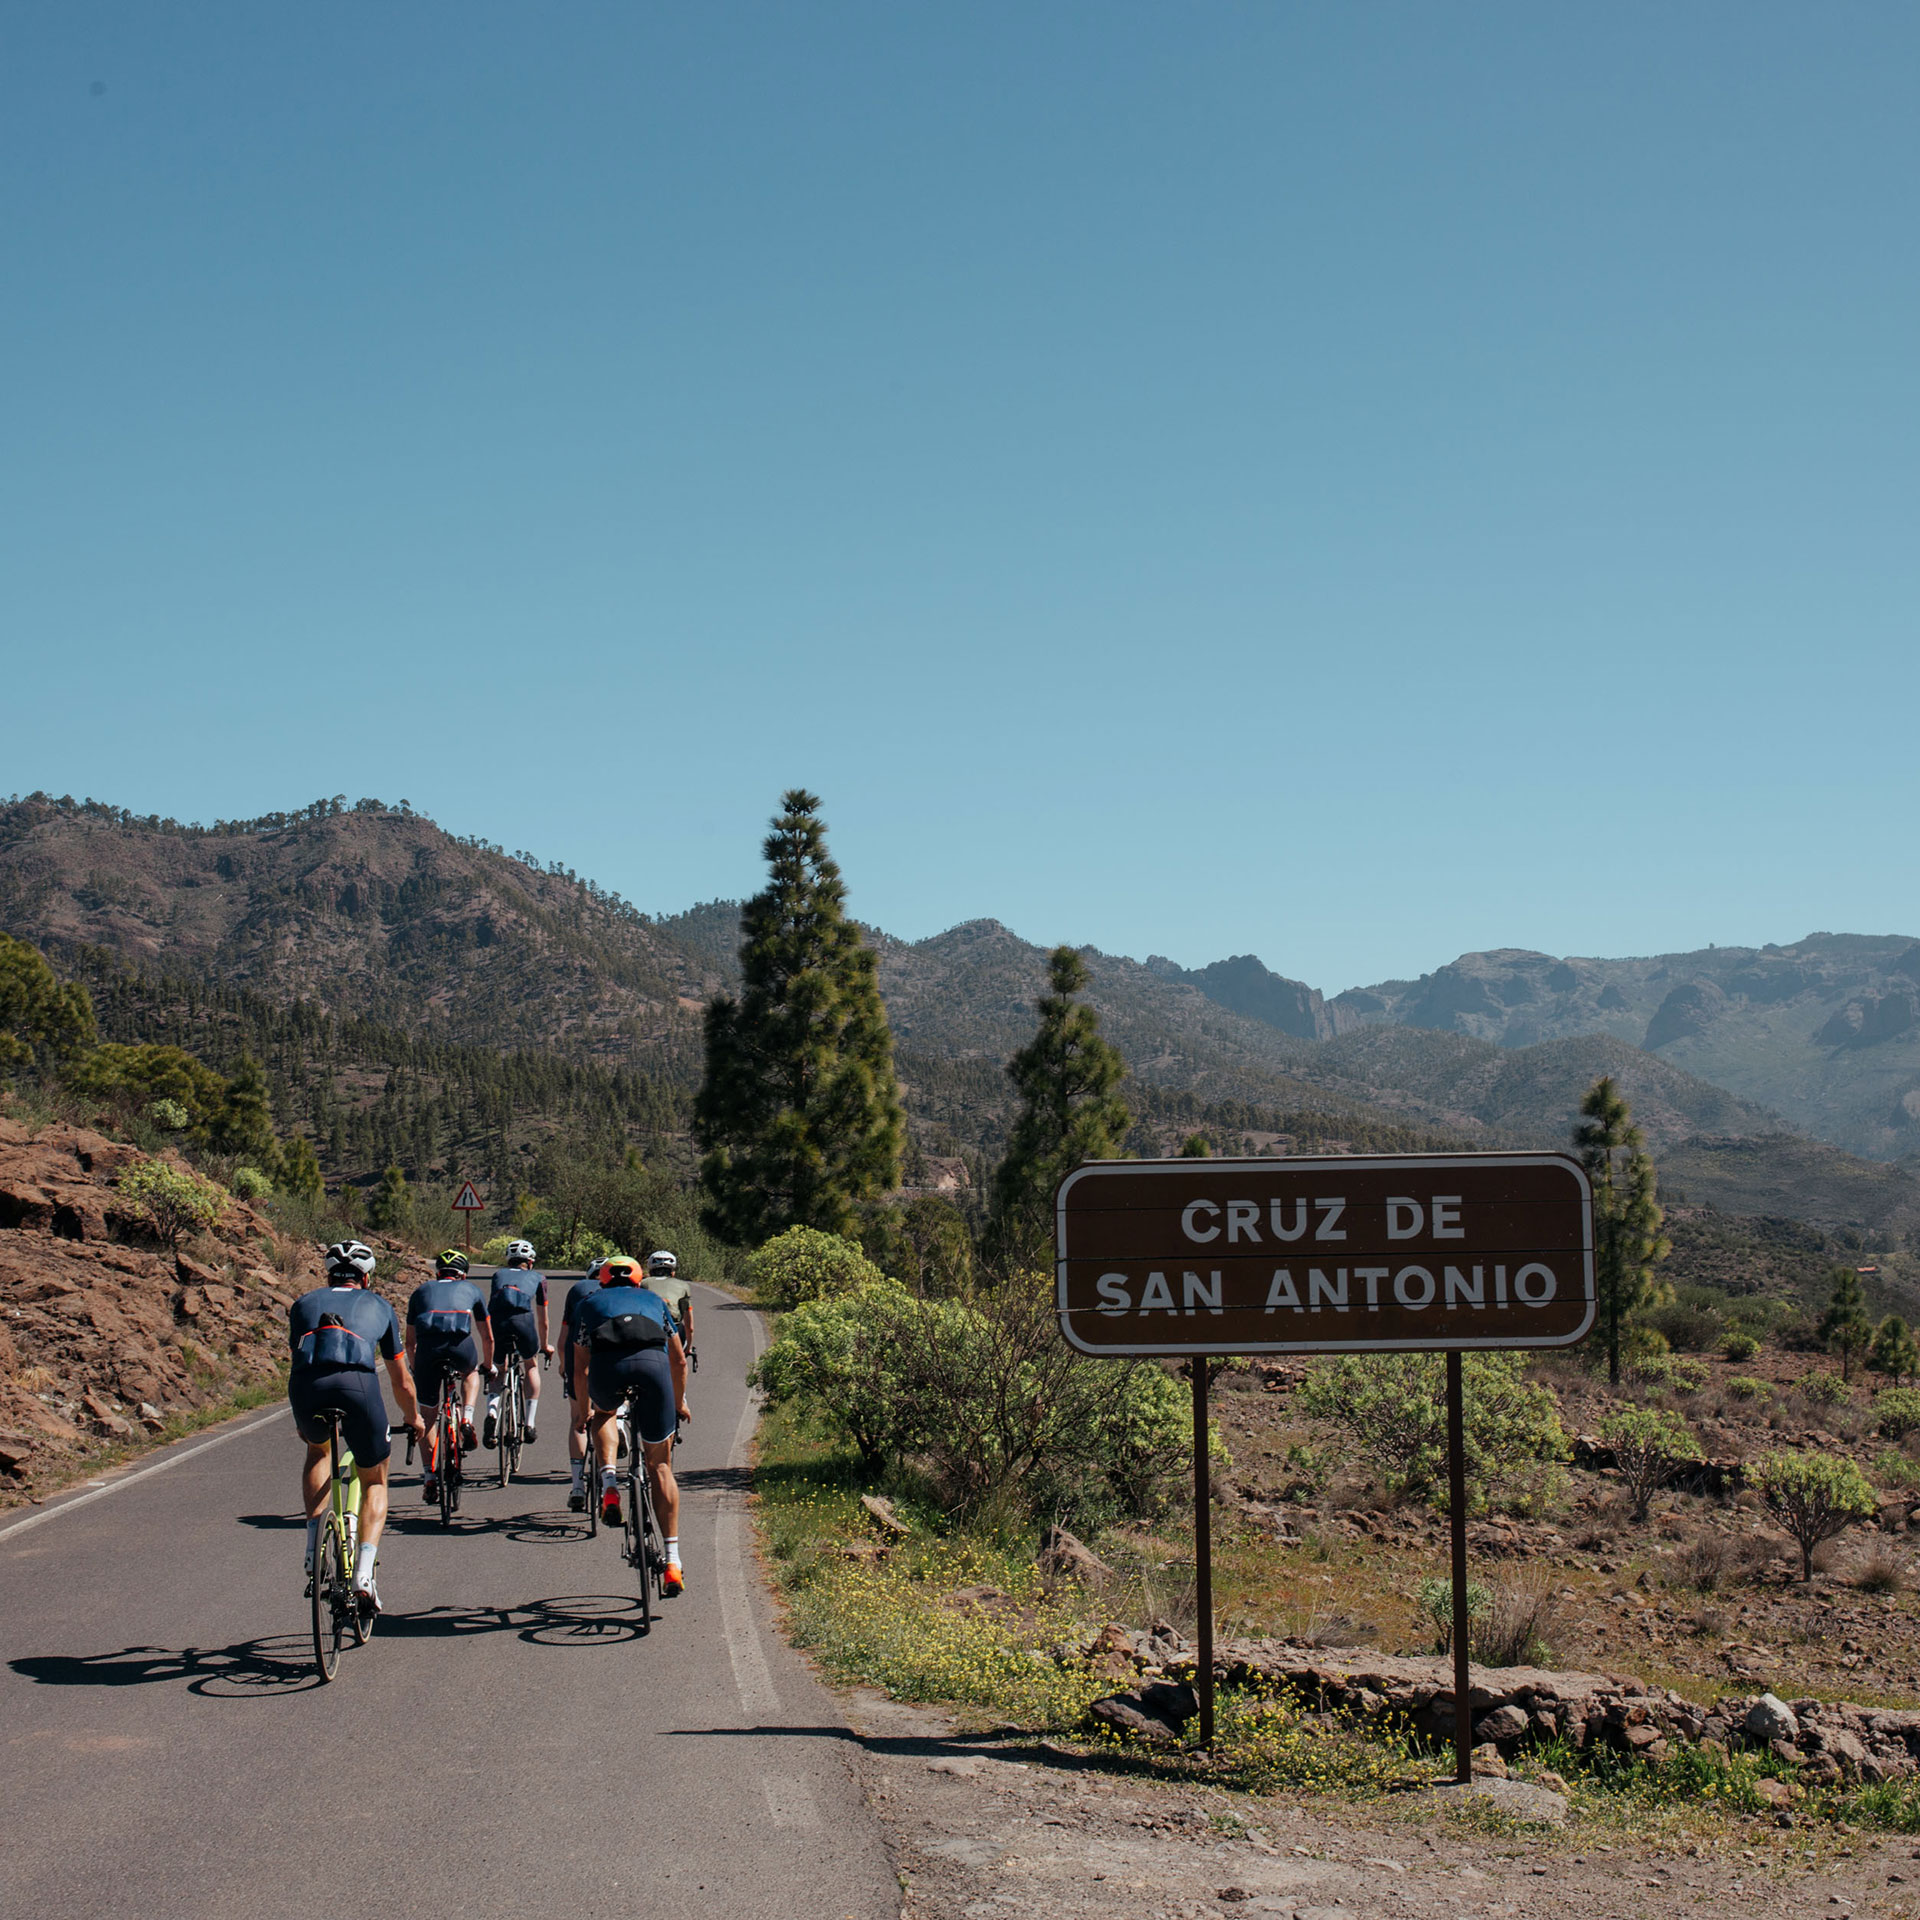 Cyclists in Gran Canaria